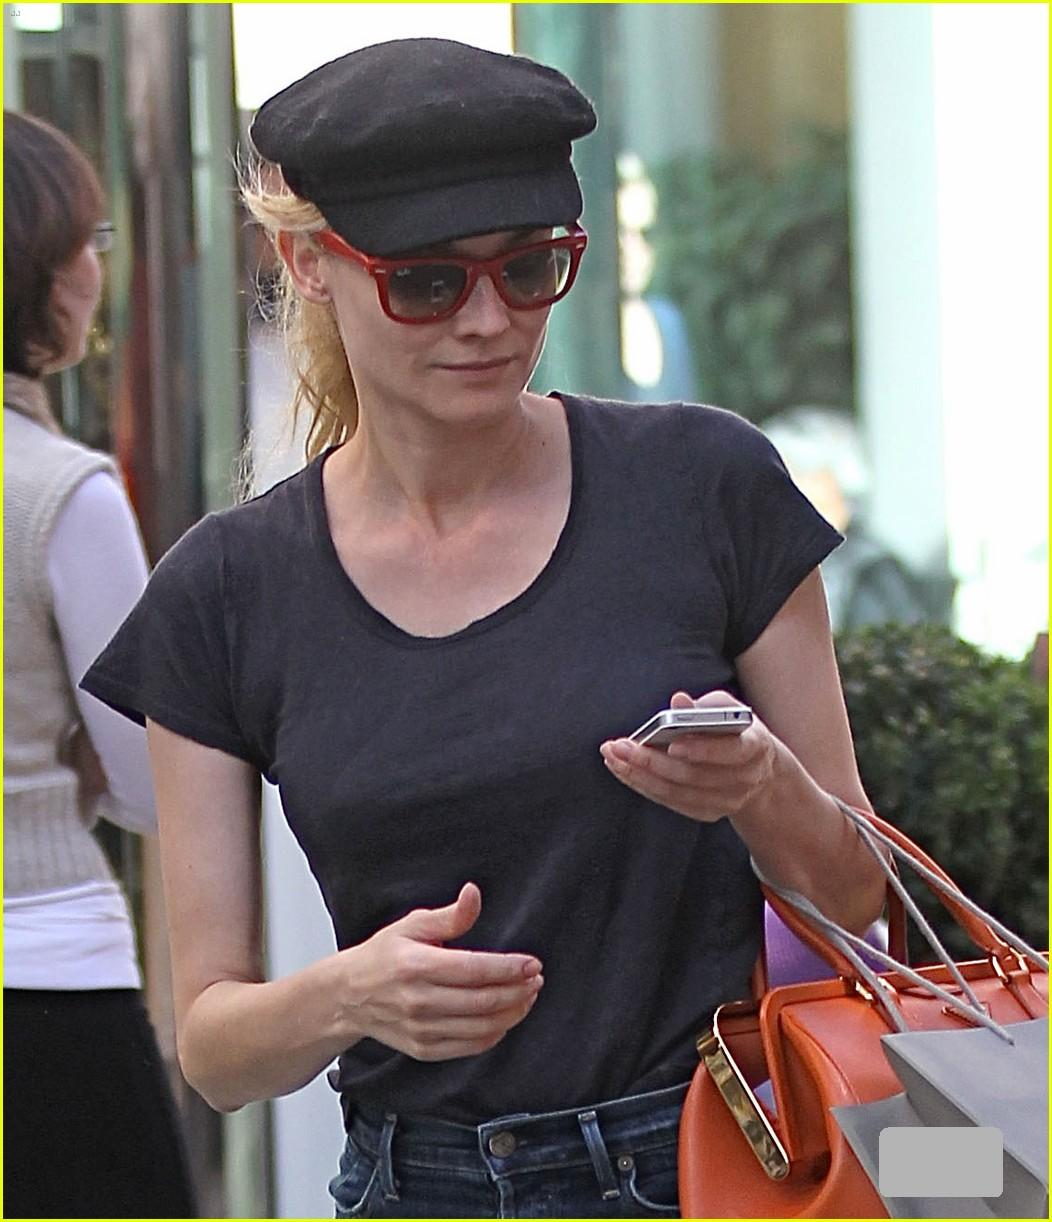 http://2.bp.blogspot.com/-y8FZKX7Cy94/UKK3IHvW__I/AAAAAAAABaM/Me2UMfEtPxk/s1600/diane-kruger-holiday-shopping-at-the-grove-04-02.jpg